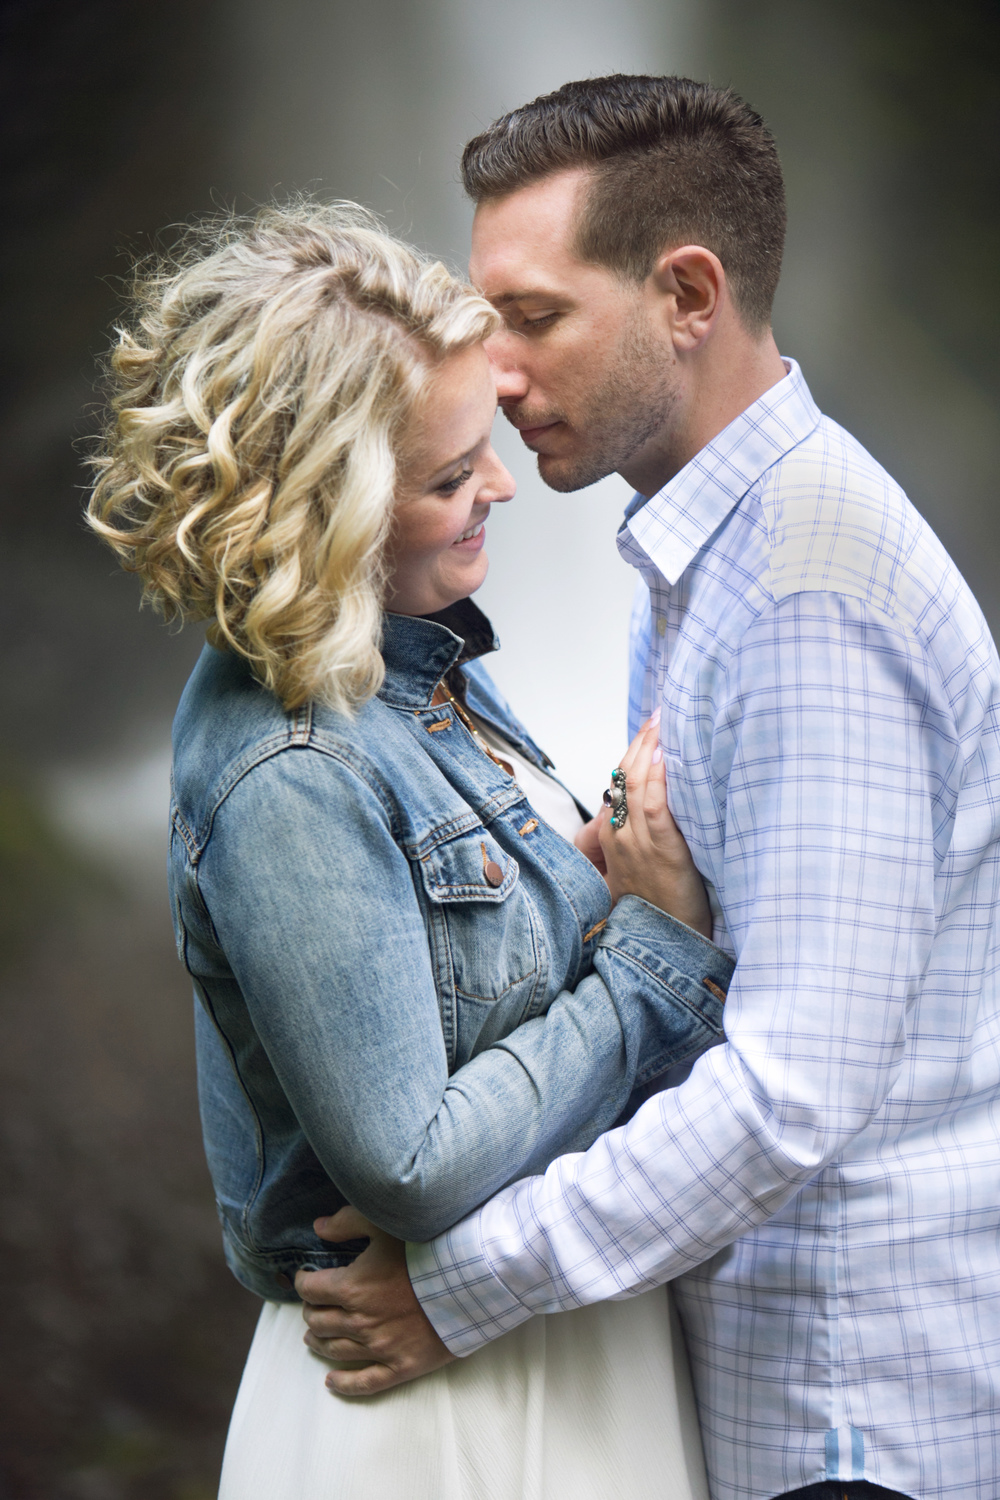 027Meagan+Tommy @ Latourell Falls +Oregon+Engagement+Session+Portland+Wedding+Film+Photography@outlivecreative.jpg